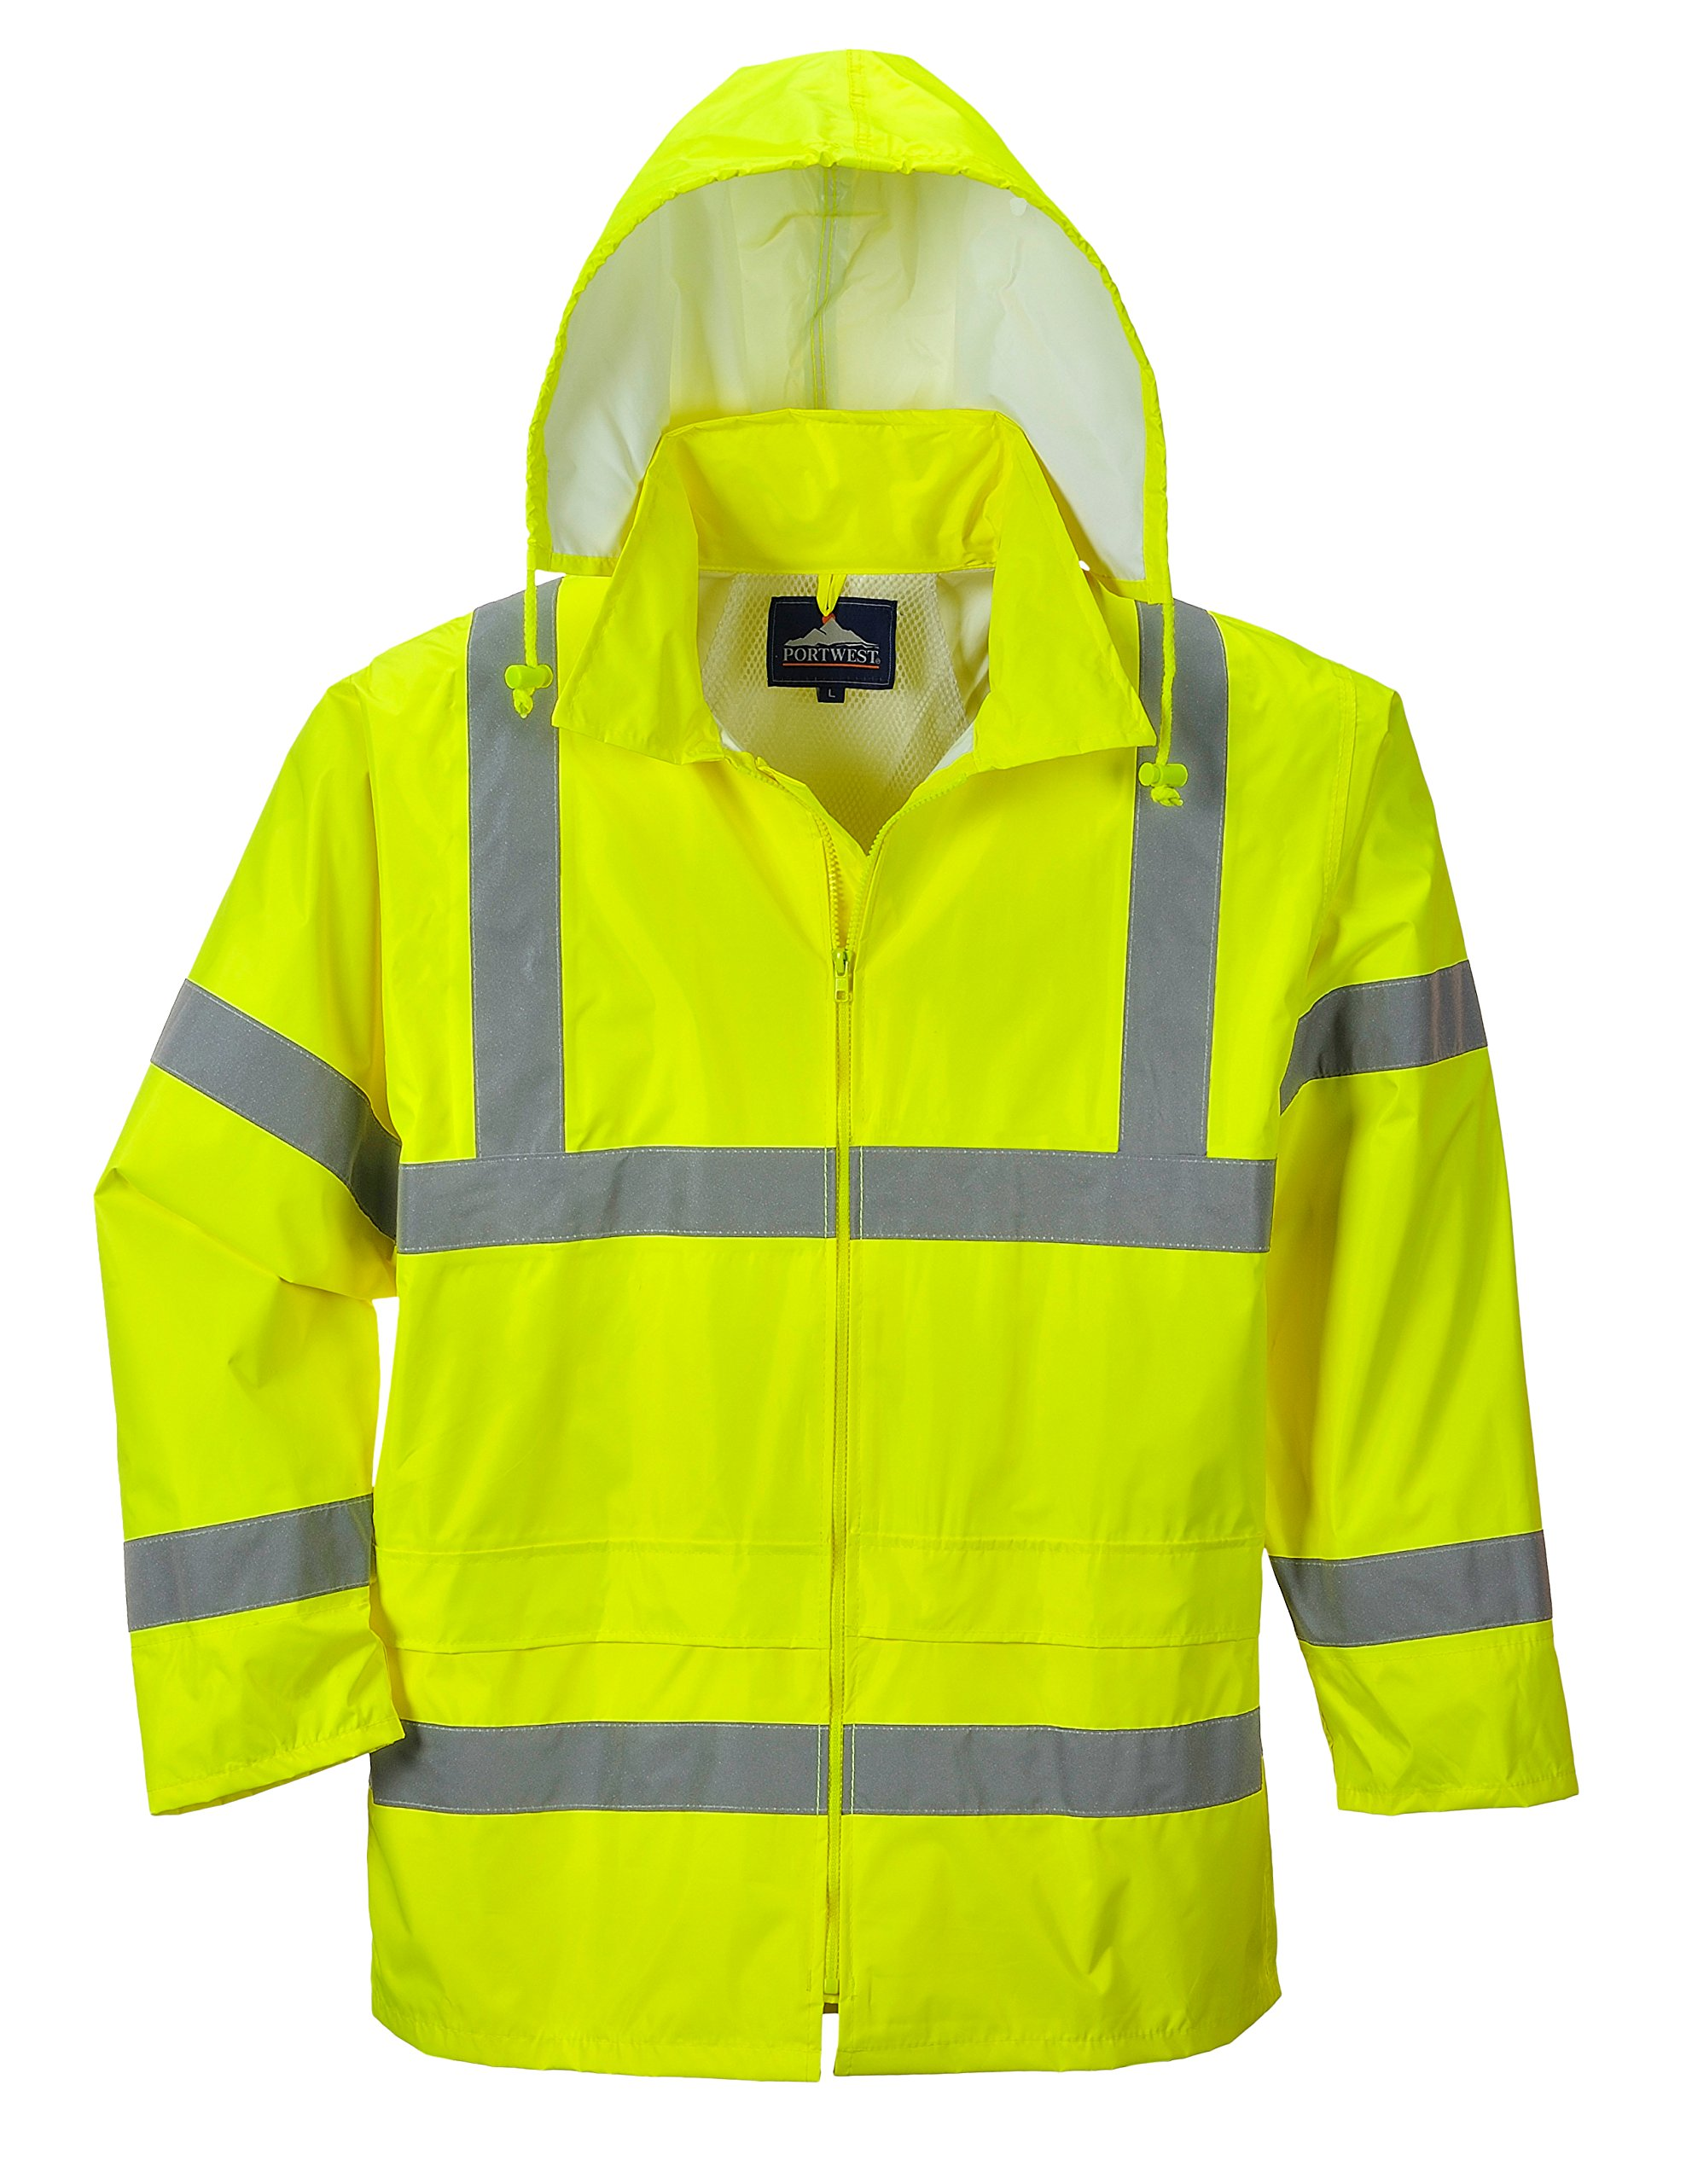 Portwest Waterproof Rain Jacket, Lightweight, Yellow, Large by Portwest